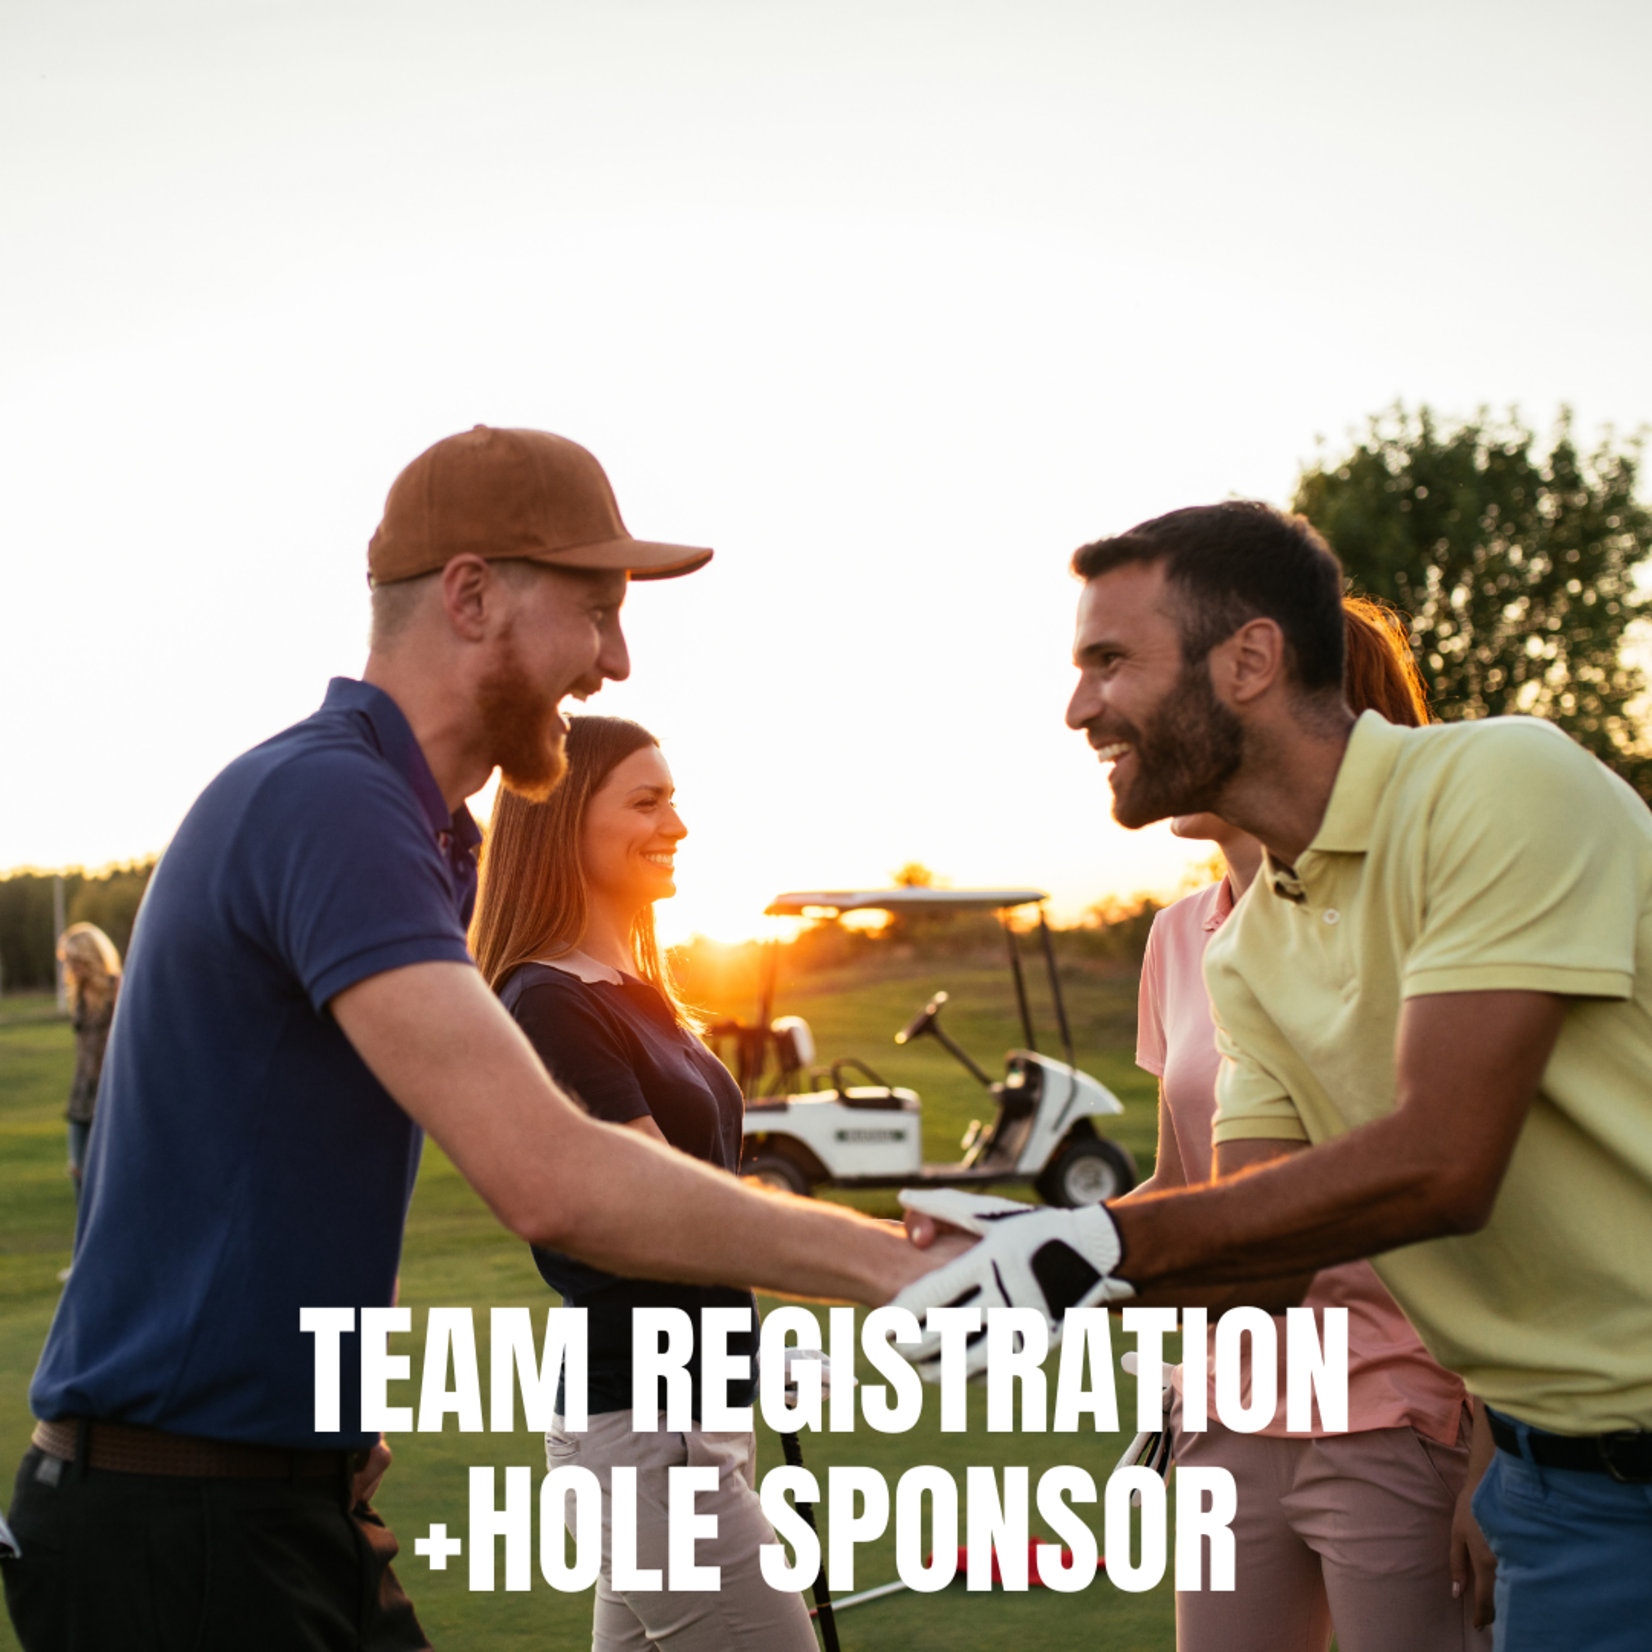 Skaters North The Station and Skaters North Golf Tournament-Team Registration +Hole Sponsor